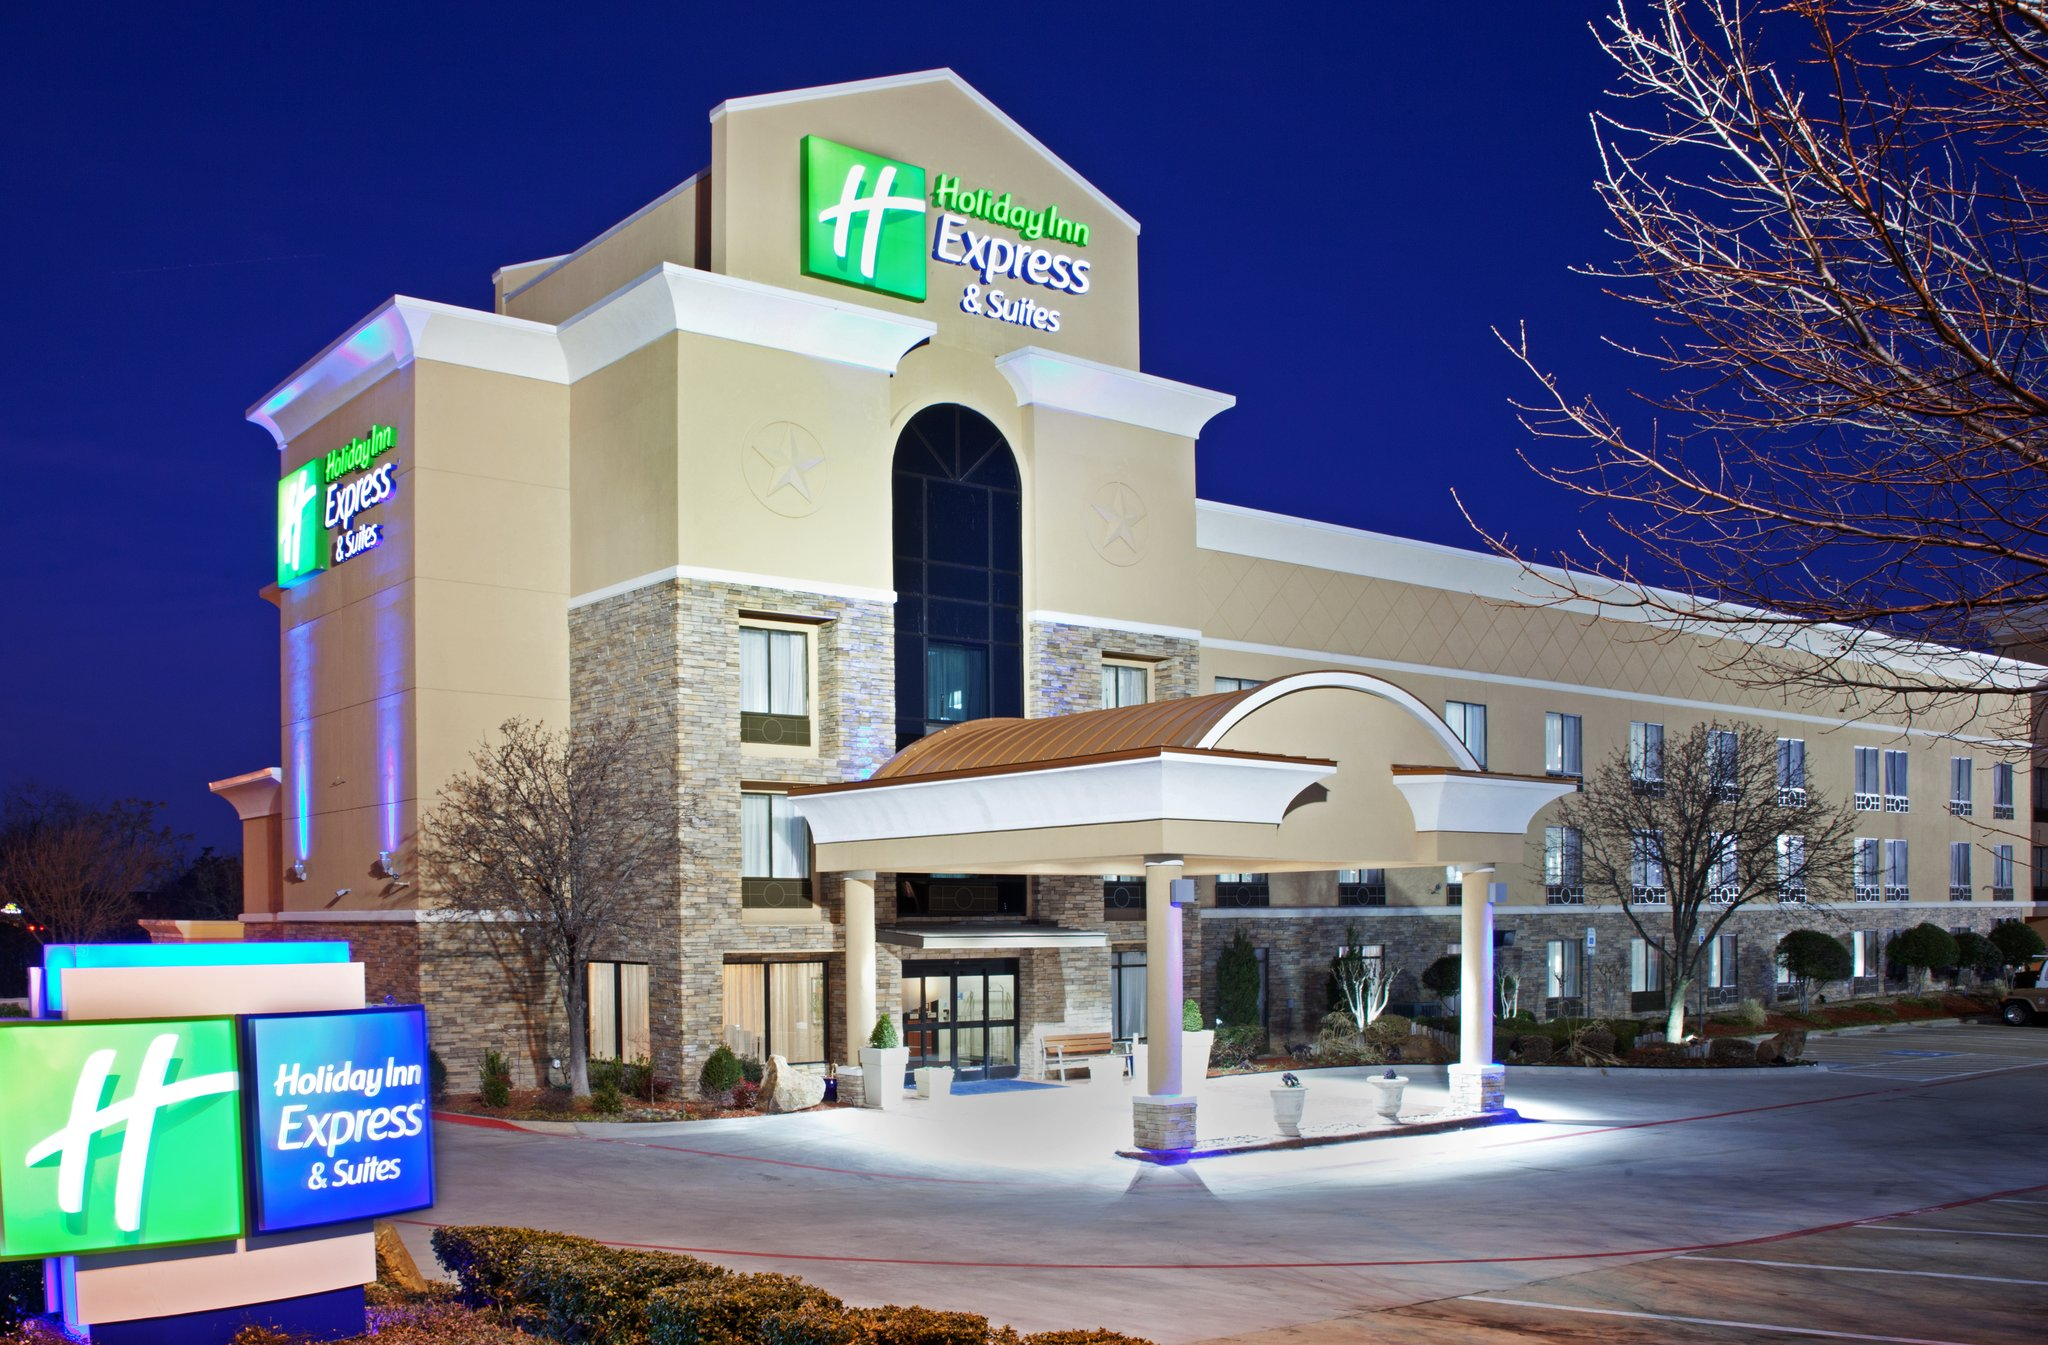 IHG Holiday Inn Express & Suites addition, Arlington (I-20-Parks Mall)